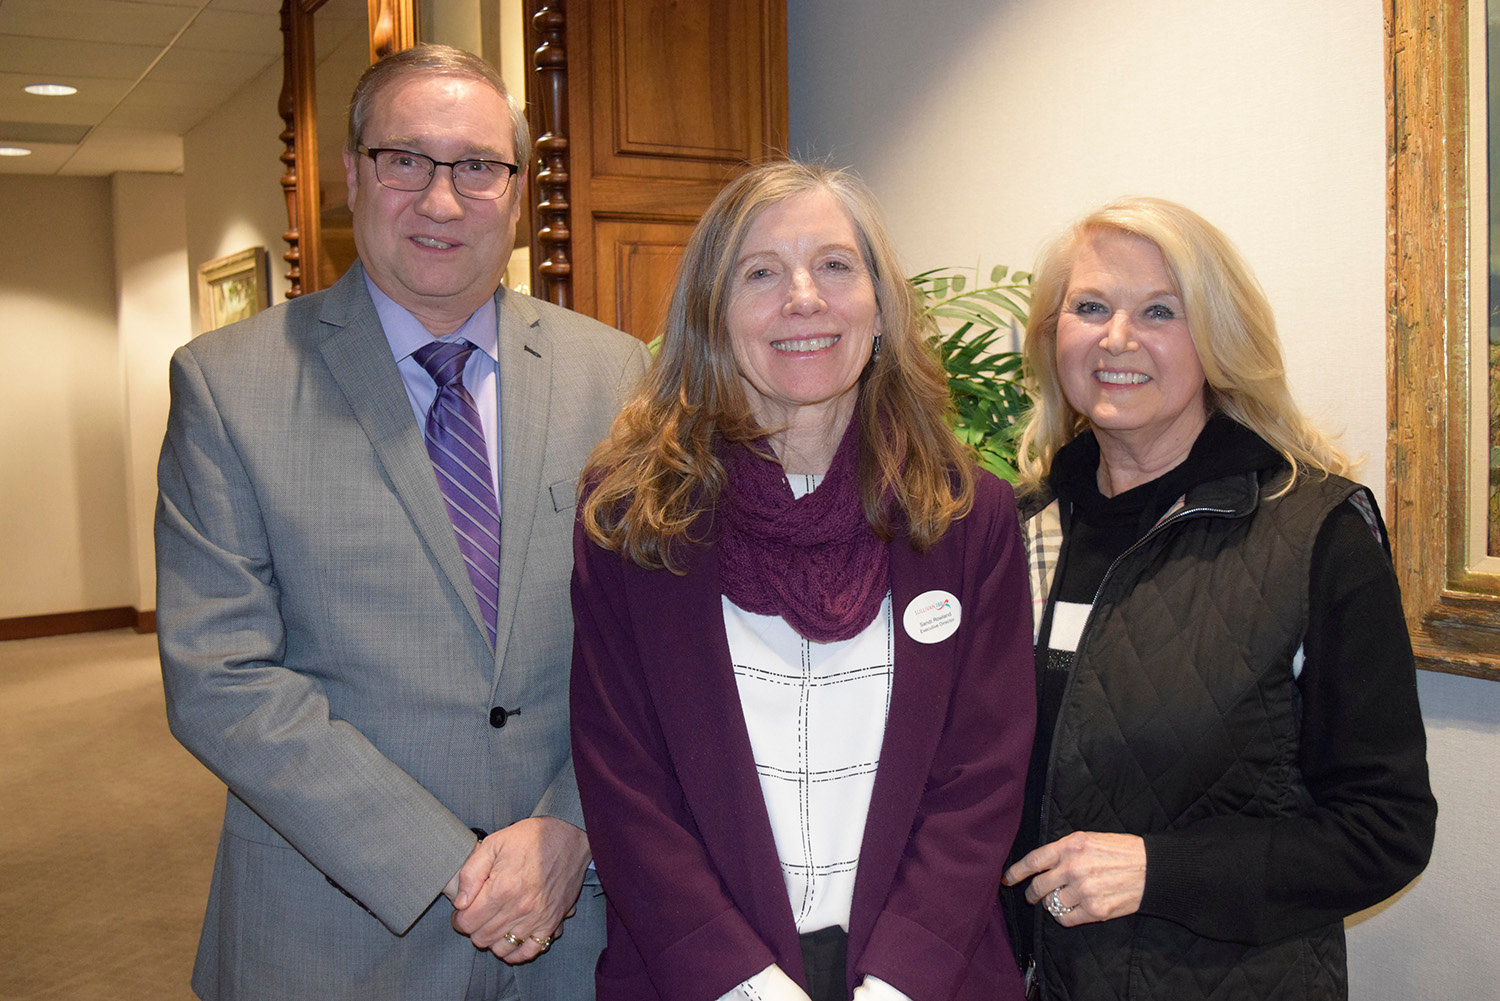 Sullivan 180 and Sullivan BOCES partner to expand health and wellness efforts in Sullivan County Schools. Pictured are District Superintendent of Sullivan BOCES Robert Dufour, Ed.D., left, Sullivan 180 Executive Director Sandi Rowland and Sullivan 180 Chair of the Board of Directors Sandra Gerry.